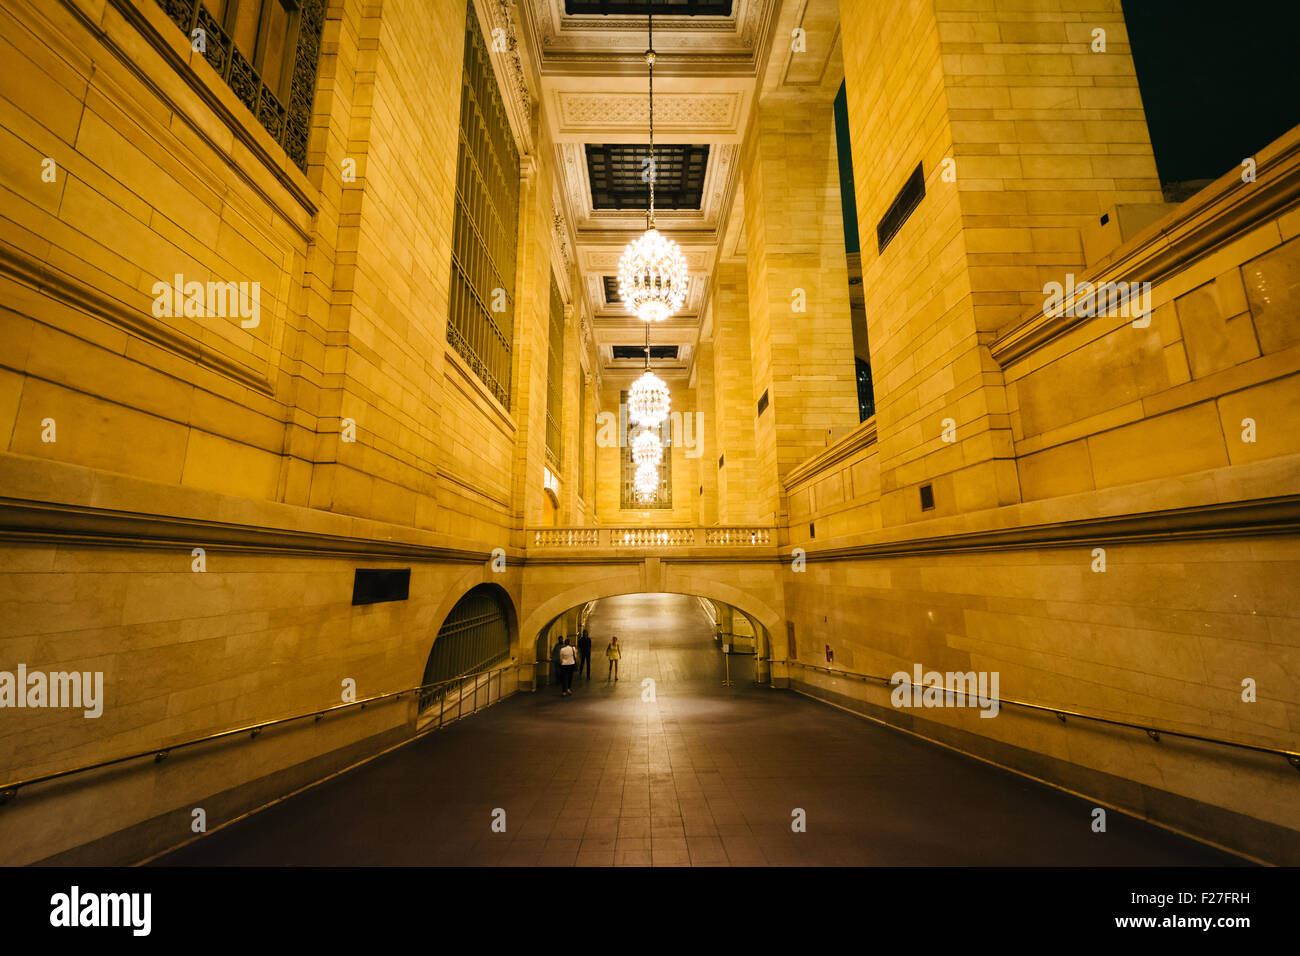 Walkway at Grand Central Station, in Midtown Manhattan, New York. - Stock Image